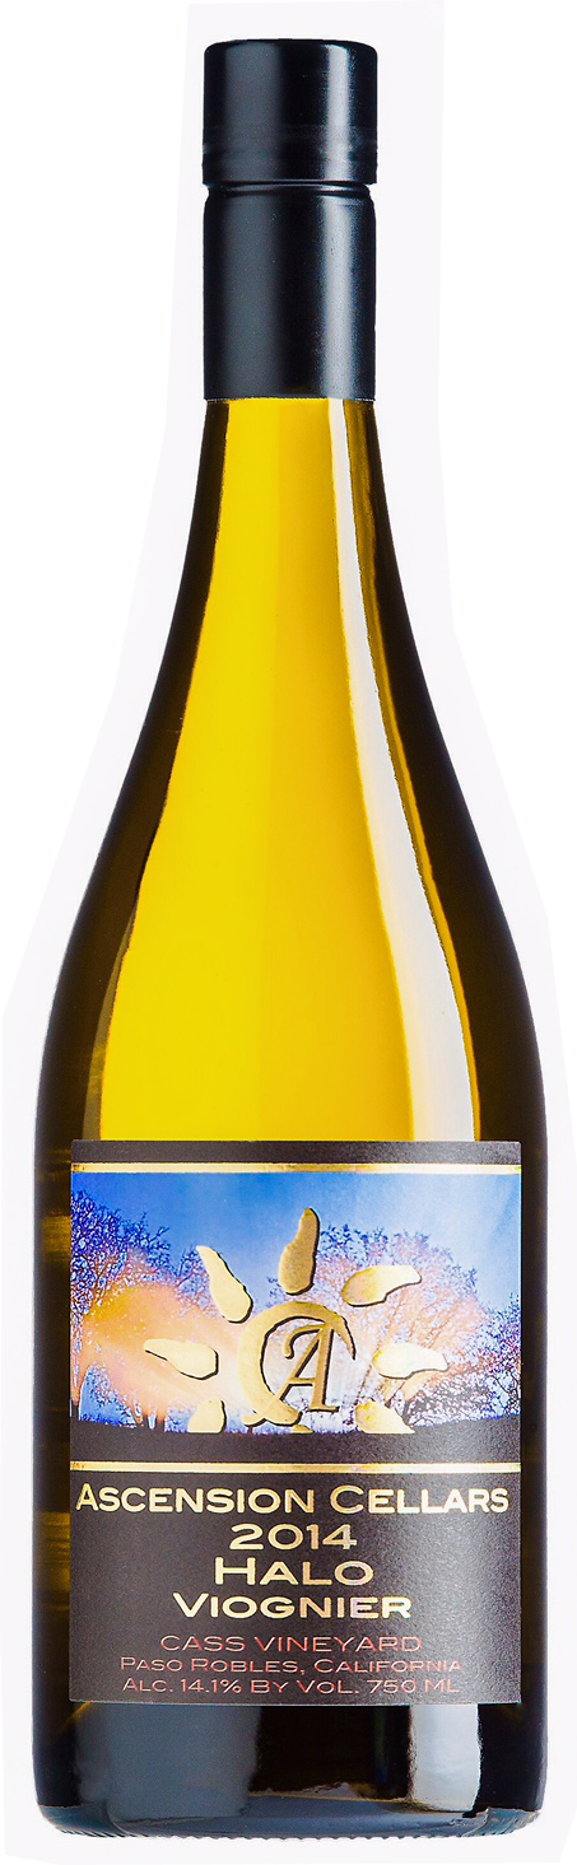 2014 Ascension Cellars Halo Viognier - Qorkz